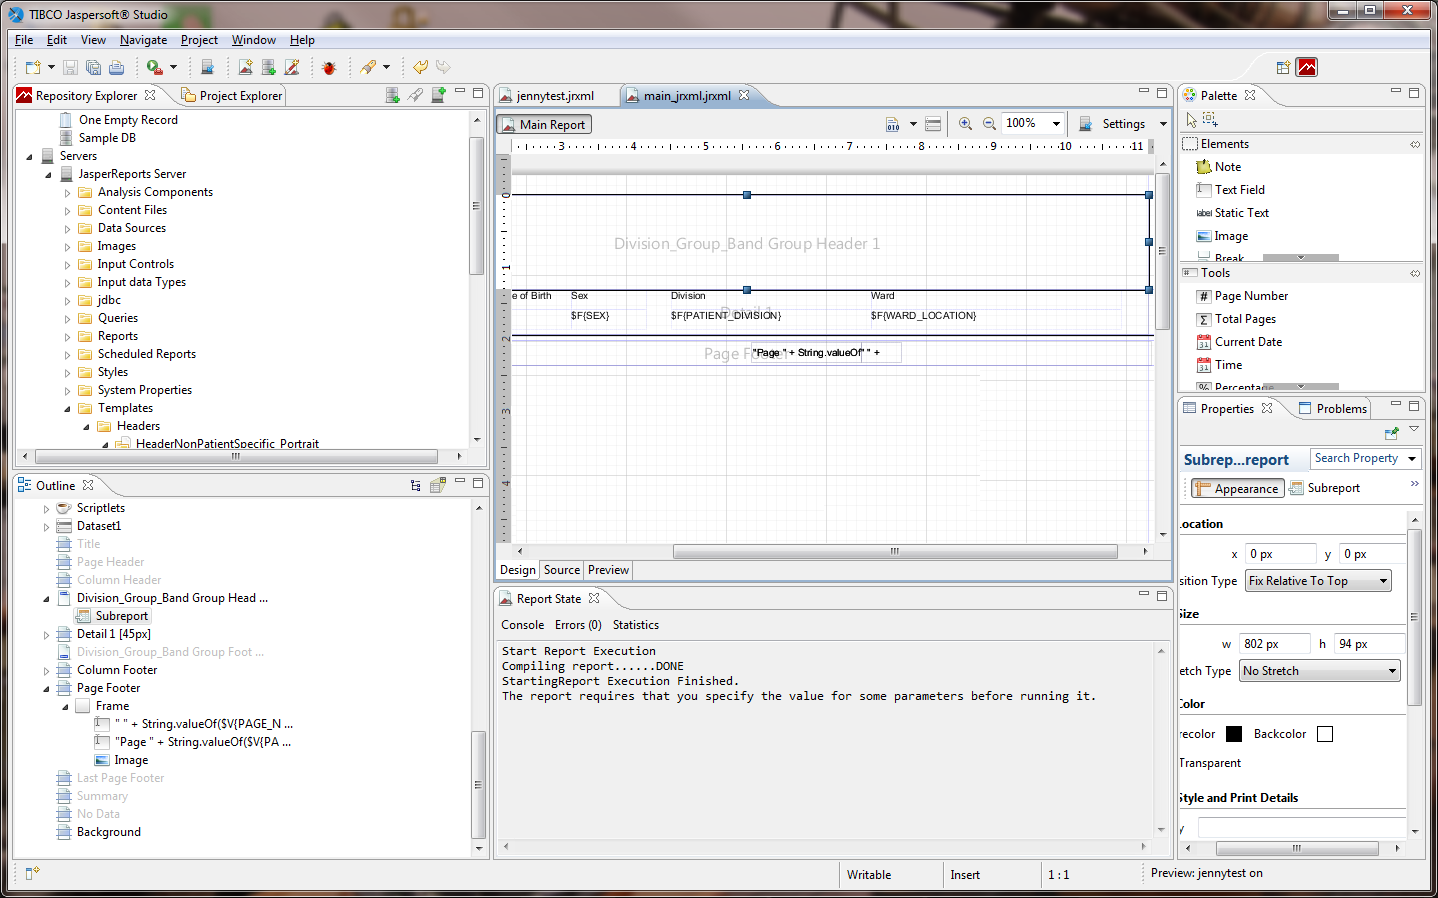 Screen shot of the JasperSoft Studio report development application.